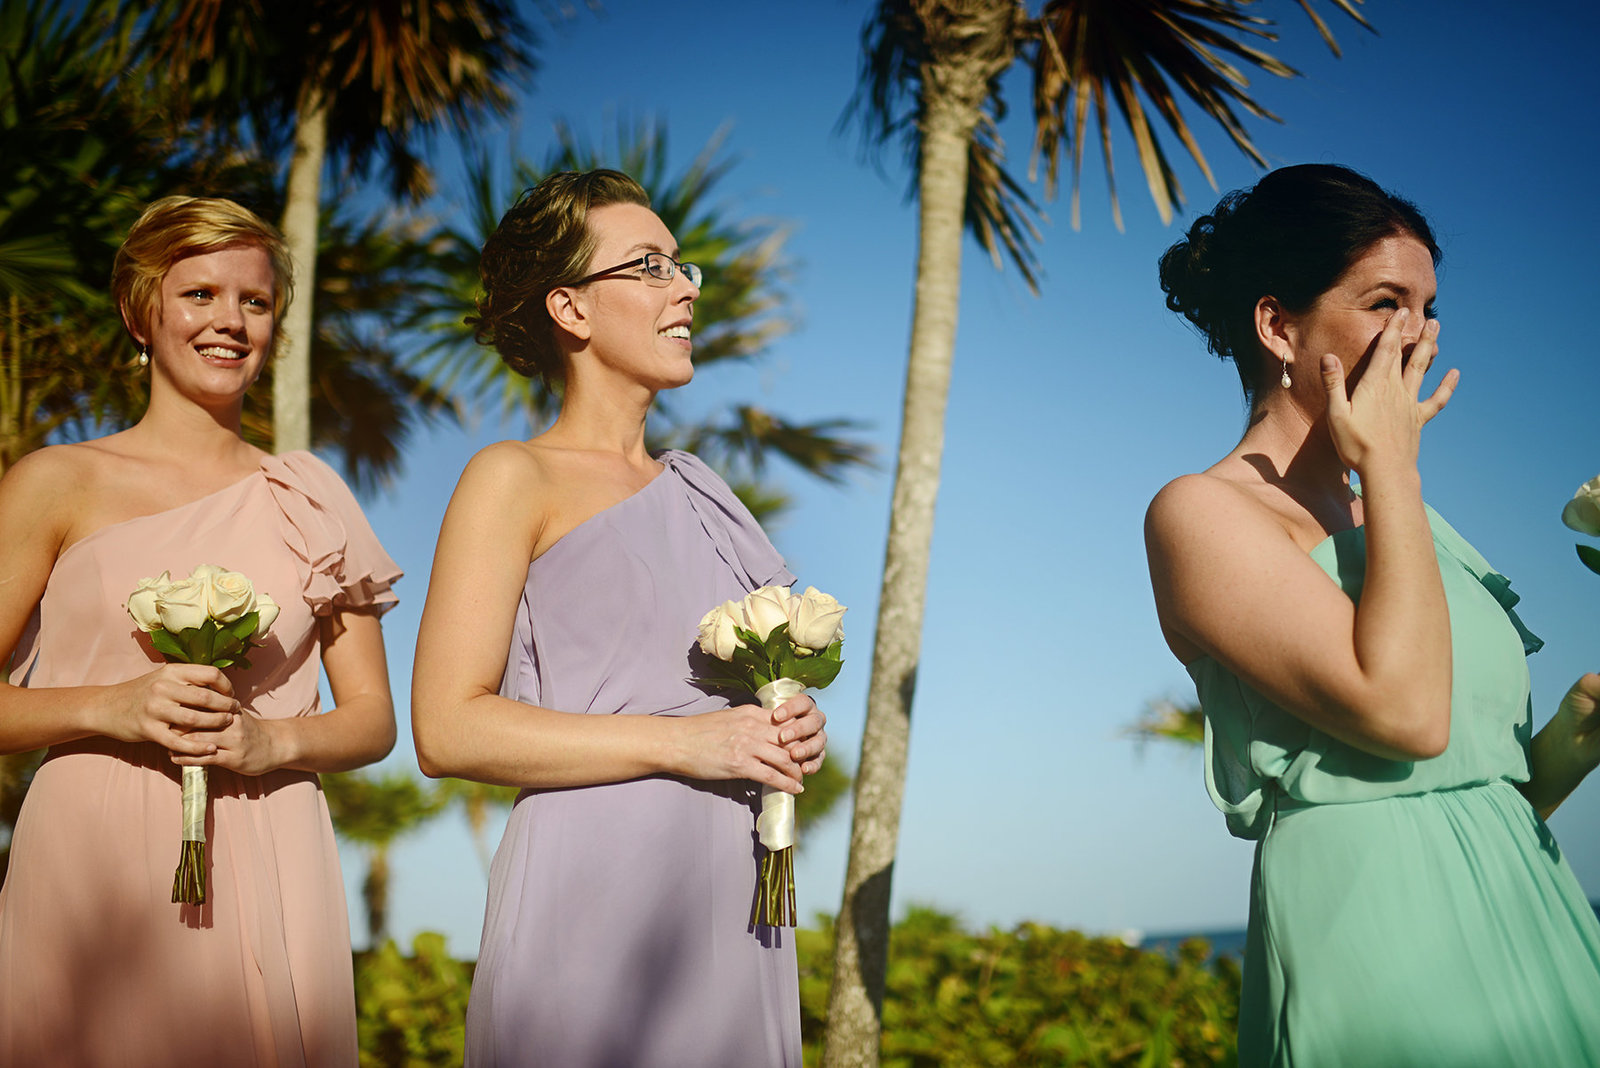 barcelo maya beach resort wedding destination wedding photographer bryan newfield photography 30